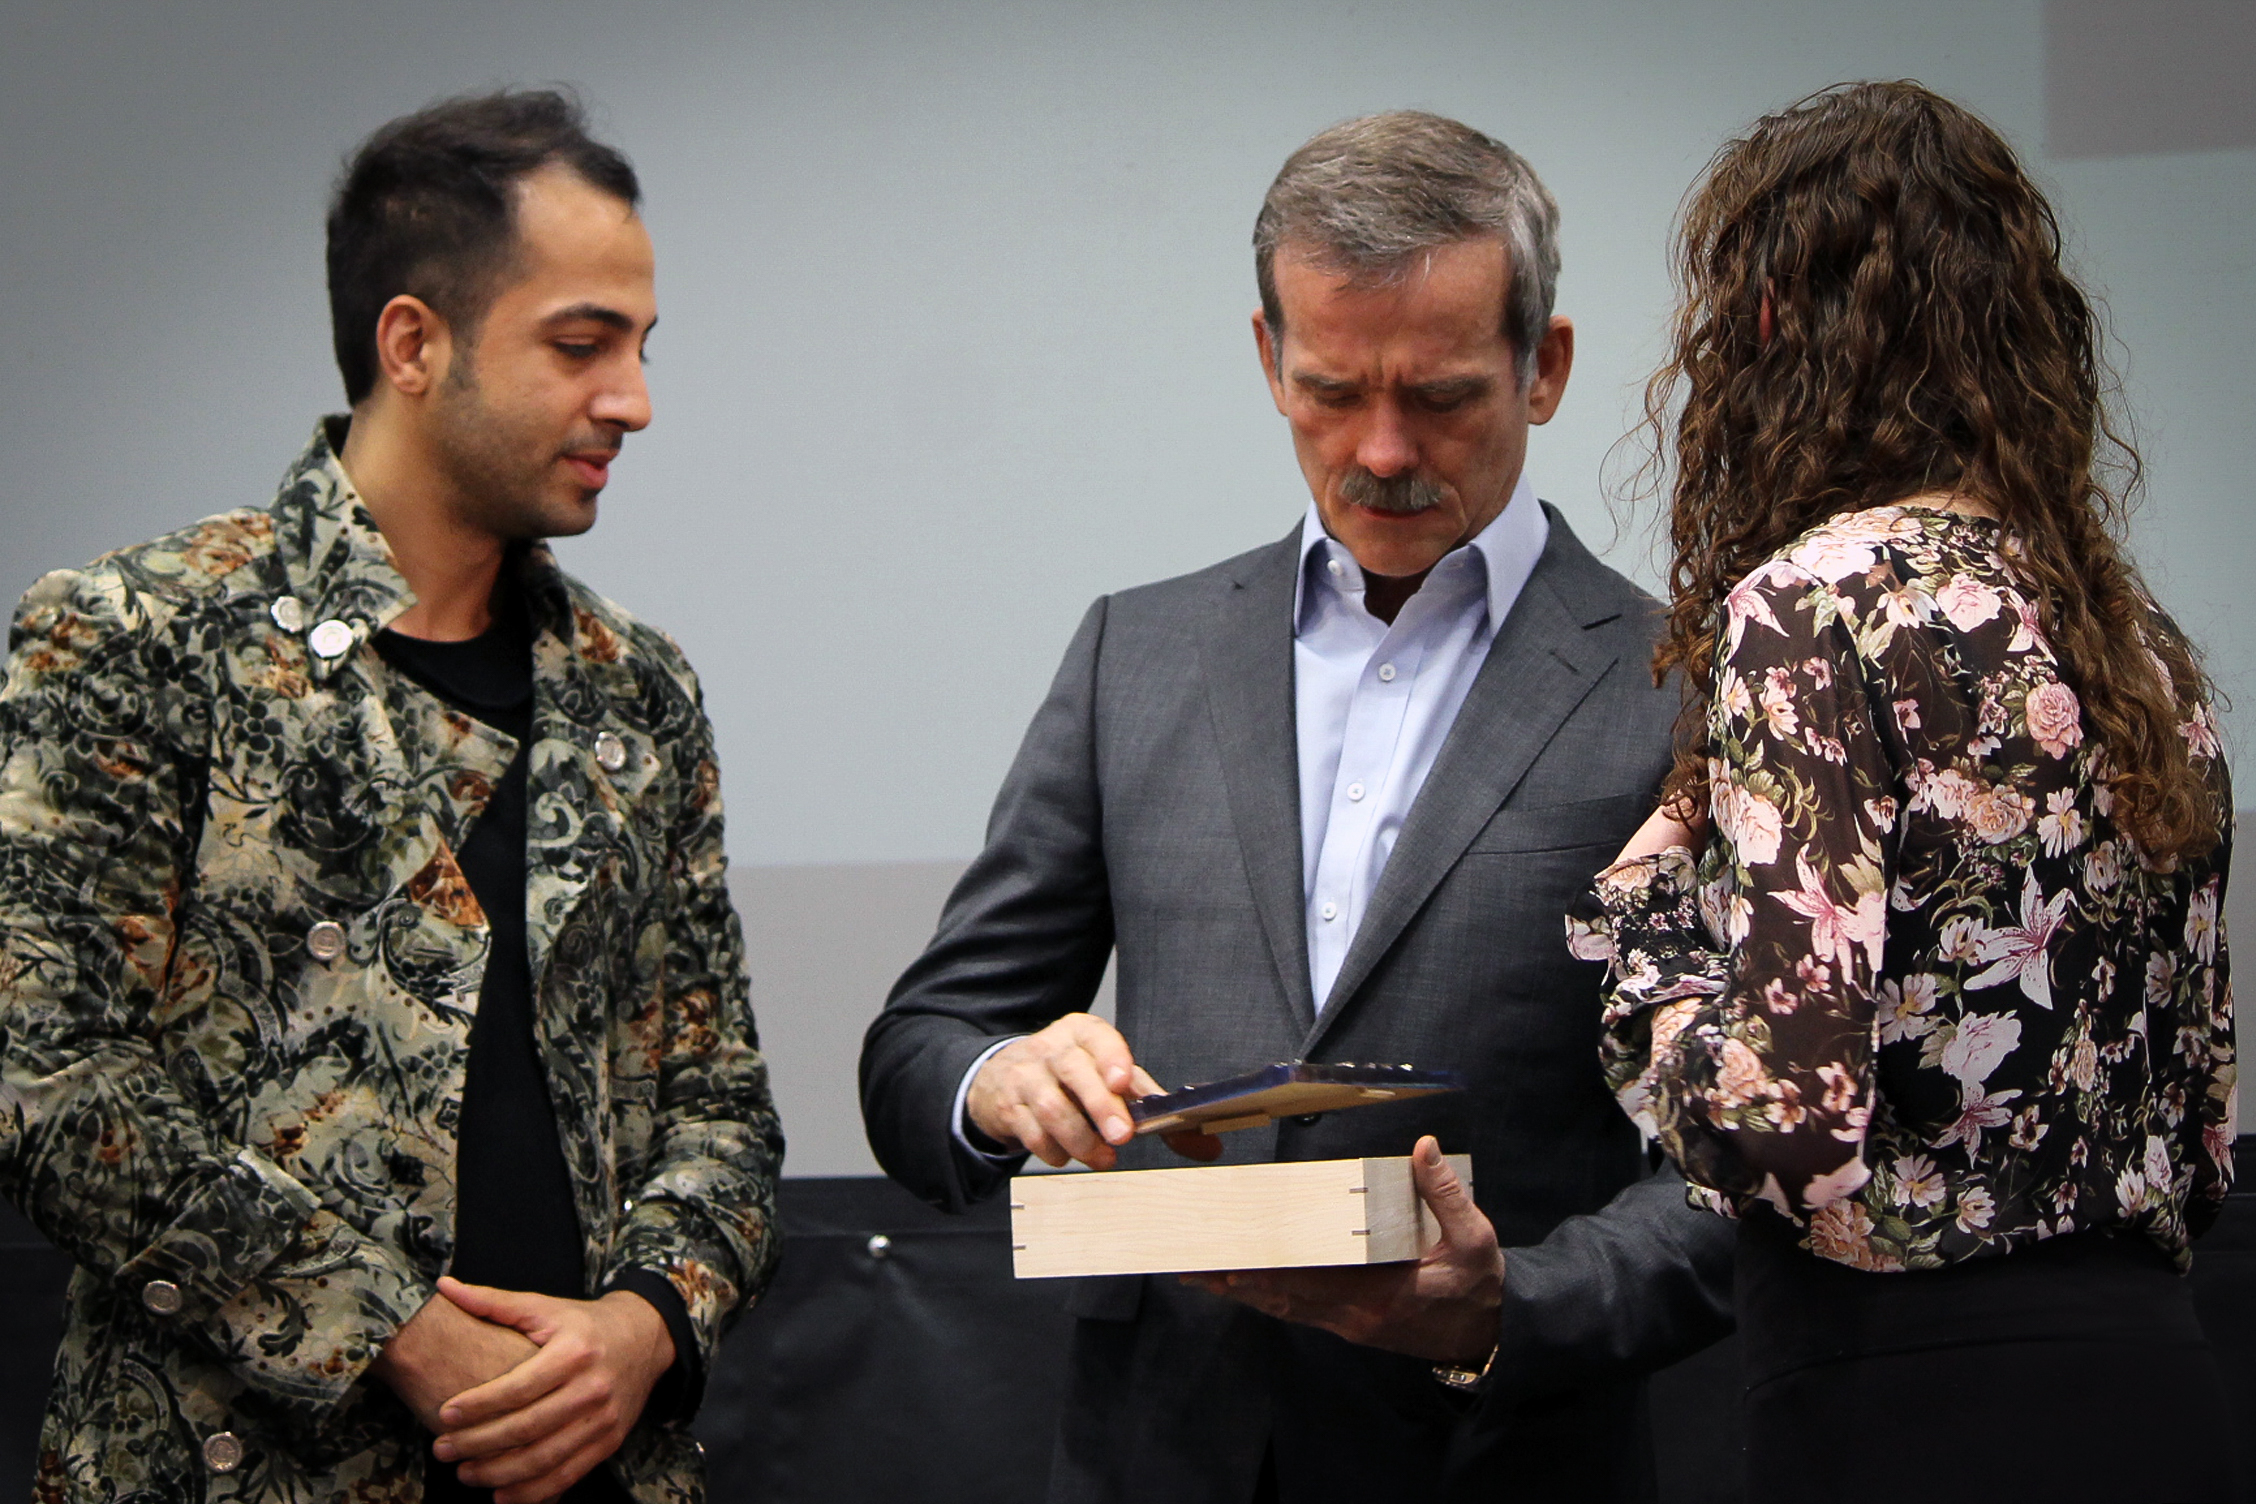 Presenting and gifting a Unify Box to Chris Hadfield.This Unify Box was the result of a collabration between Hassan Rezaei and Hamid Shahi